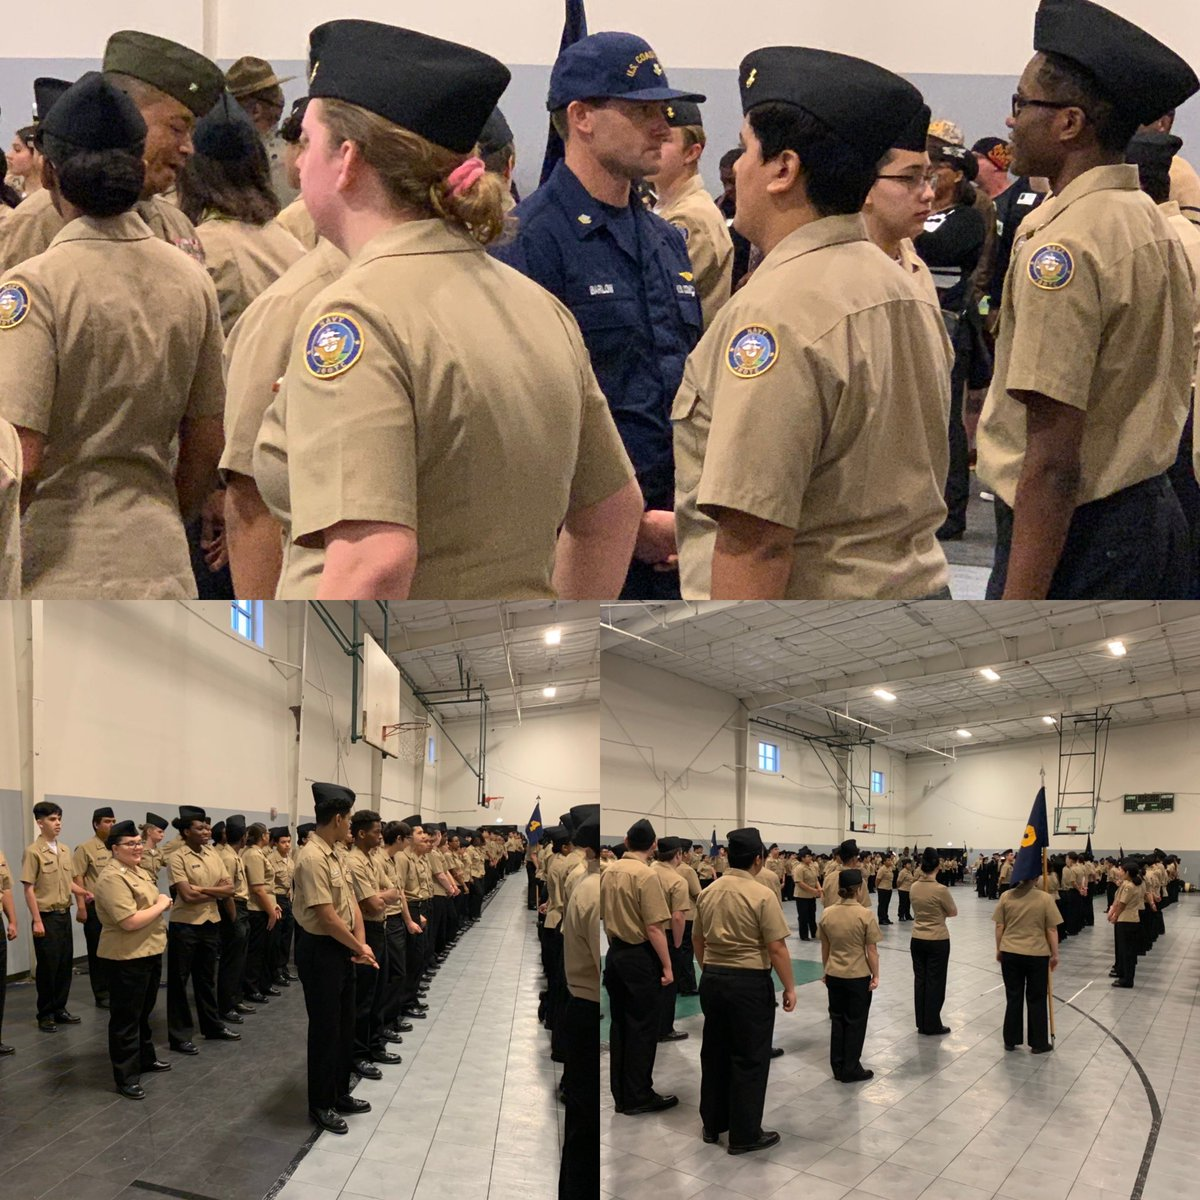 It's that time again! Annual military inspection for the SHS regiment! @SPRINGHIGHLIONS @SpringNJROTC #mbybob https://t.co/zB4CgX0Ei9